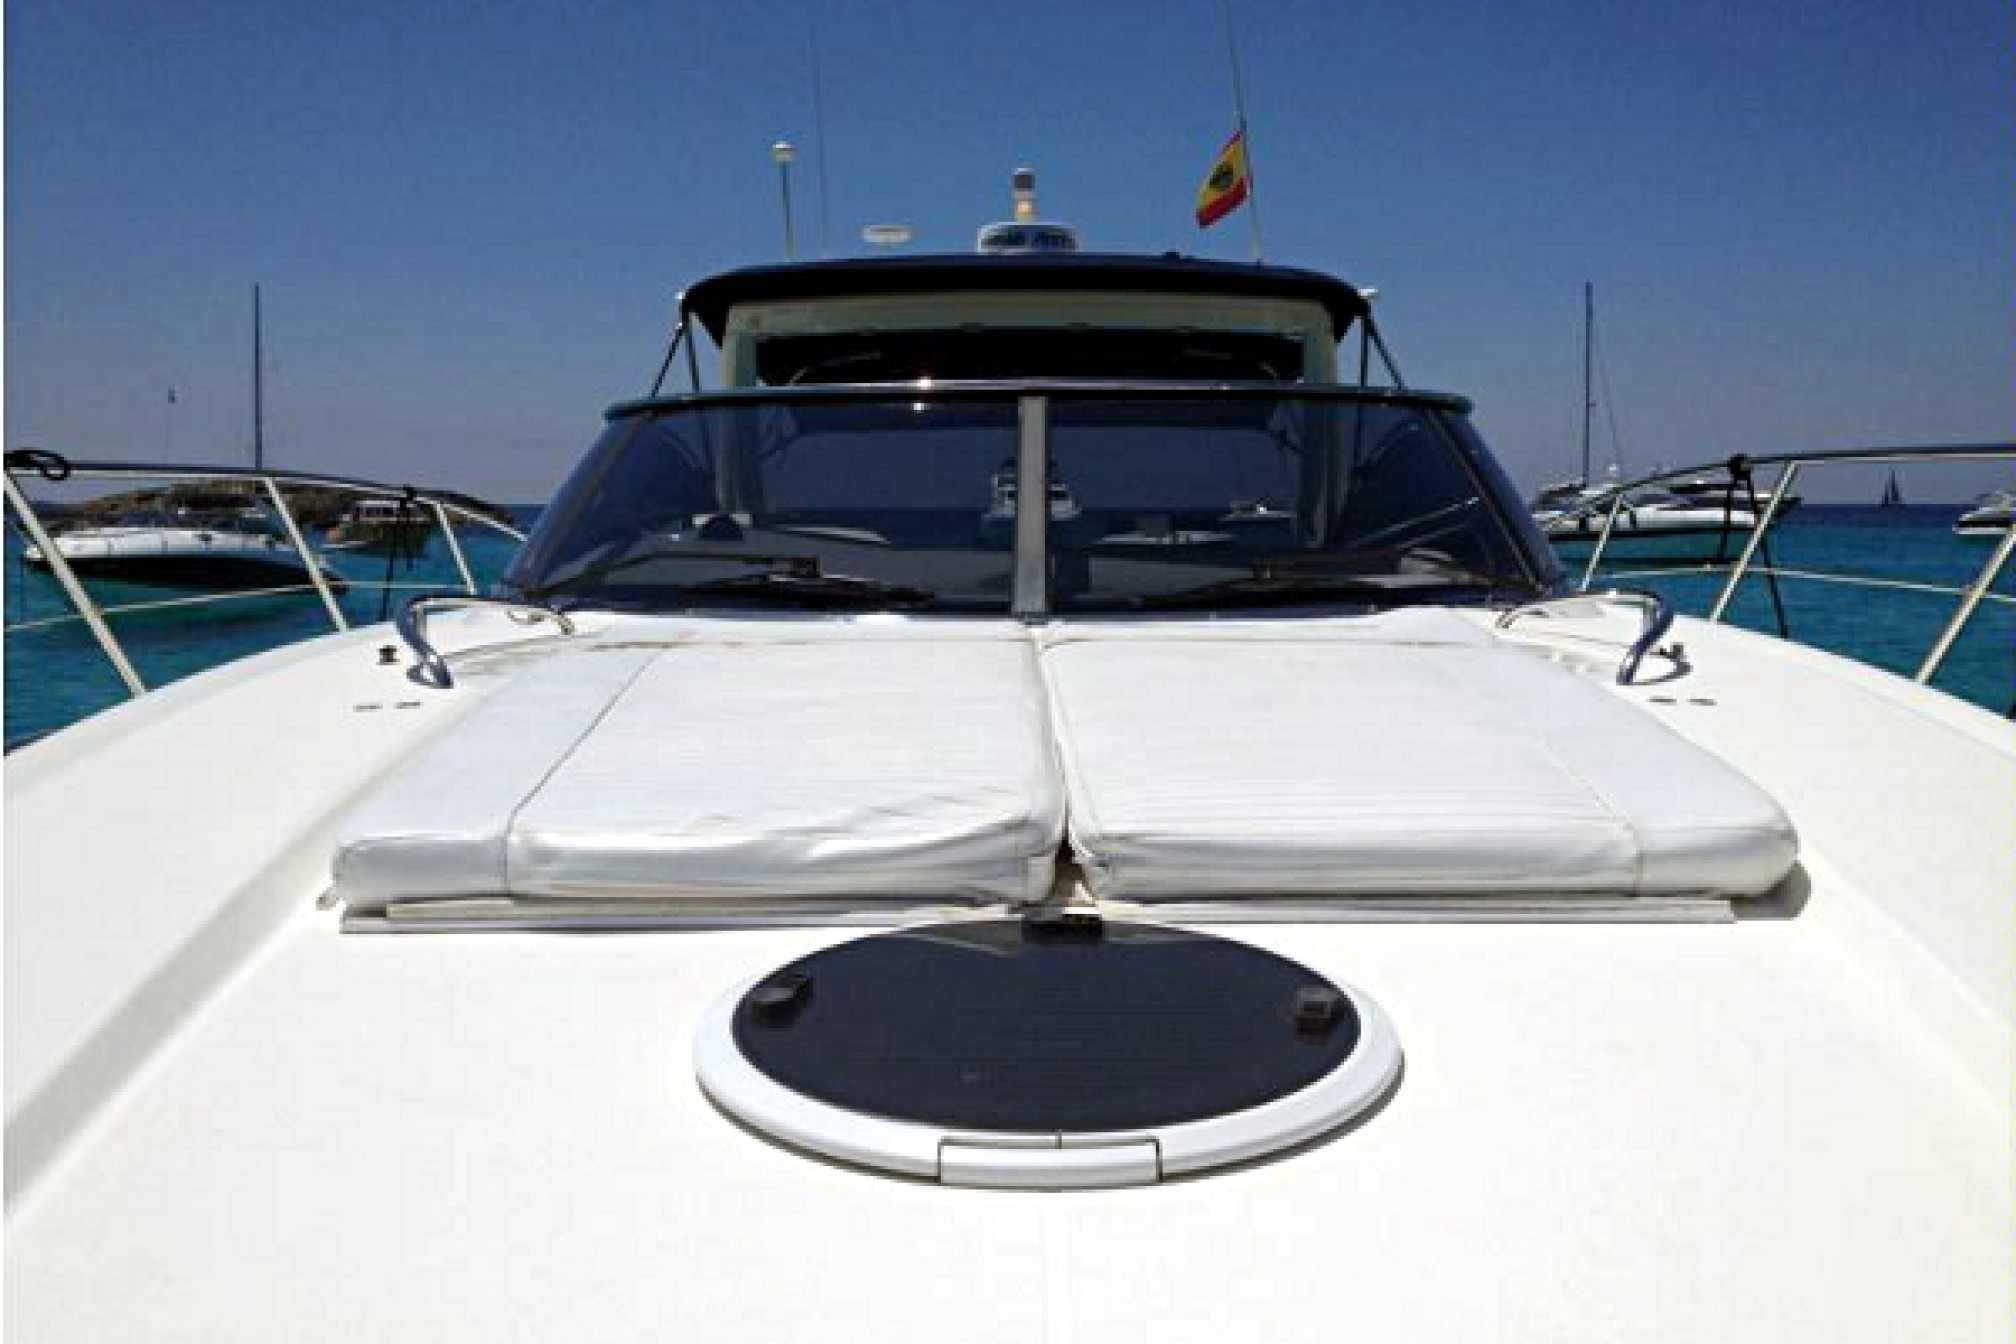 Sunseeker camargue 50 charter yacht outdoors